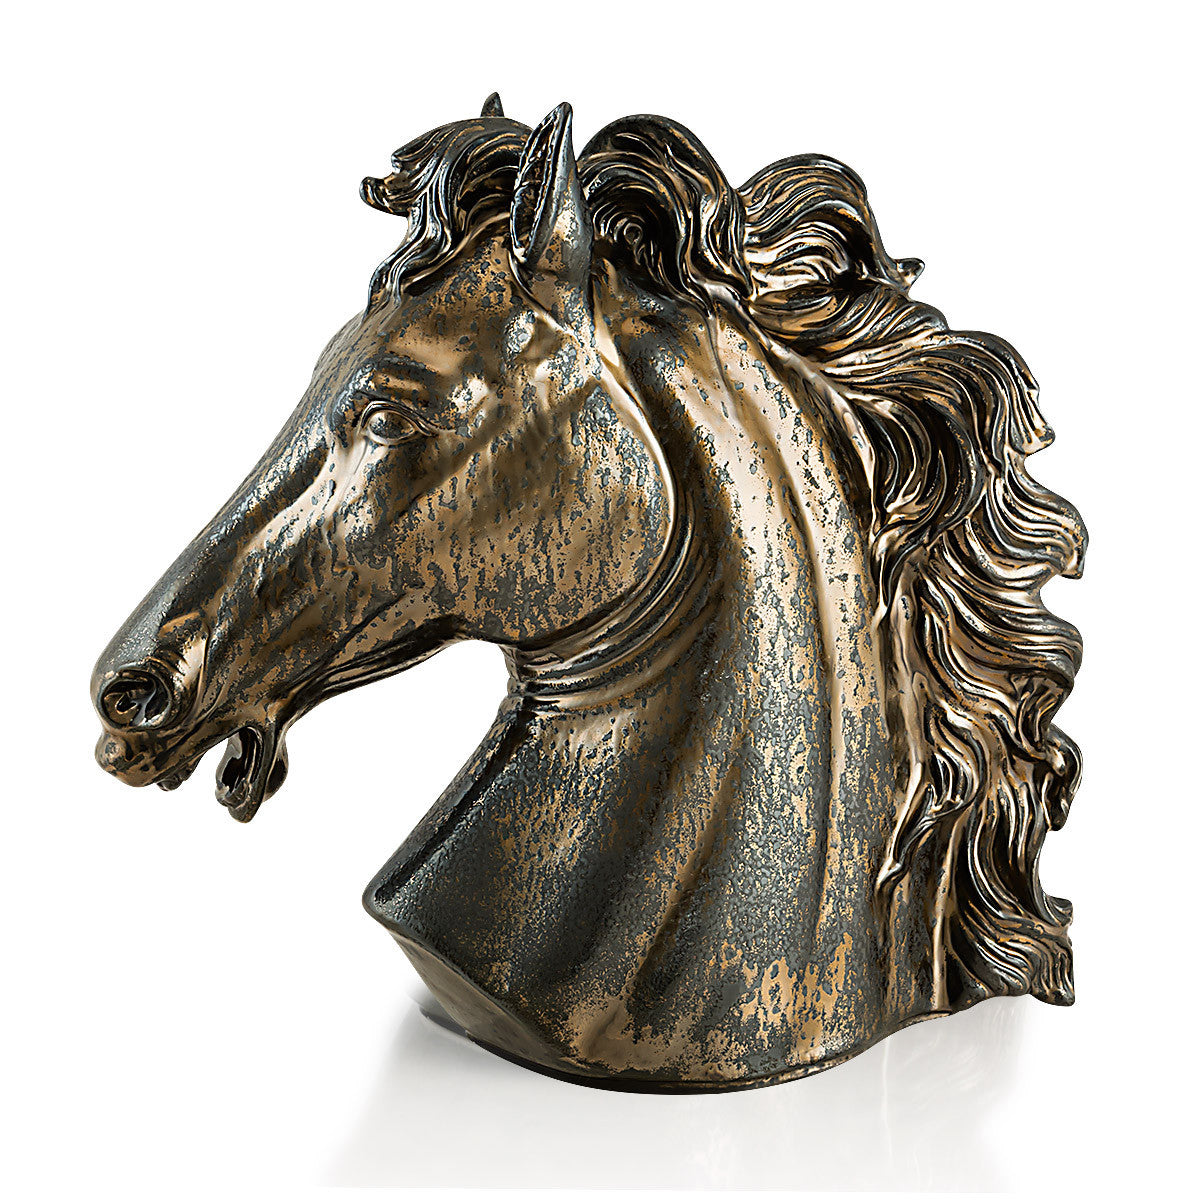 TESTA DI CAVALLO IN CERAMICA MADE IN ITALY